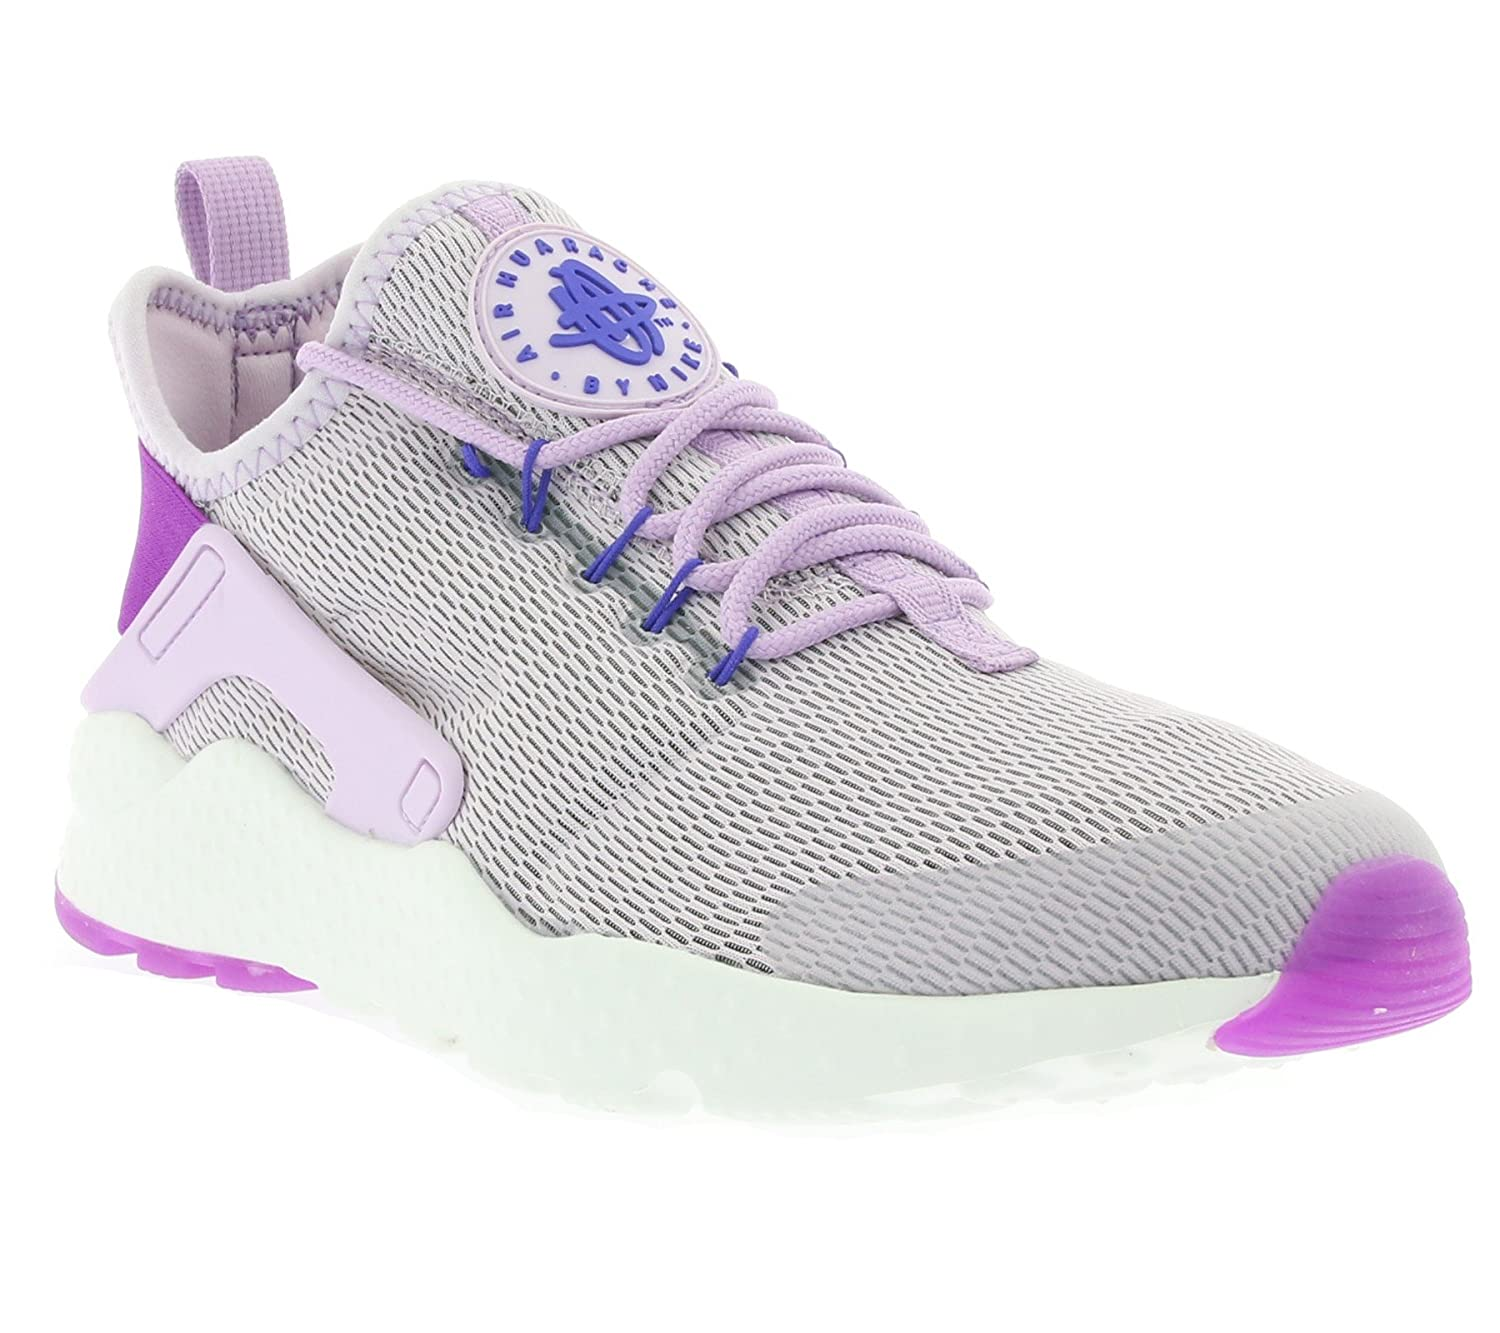 promo code cc034 0aed0 Nike AIR Huarache Run Ultra Womens Running-Shoes 819151-5017.5 - Bleached  Lilac Hyper Violet 501 Amazon.in Shoes  Handbags